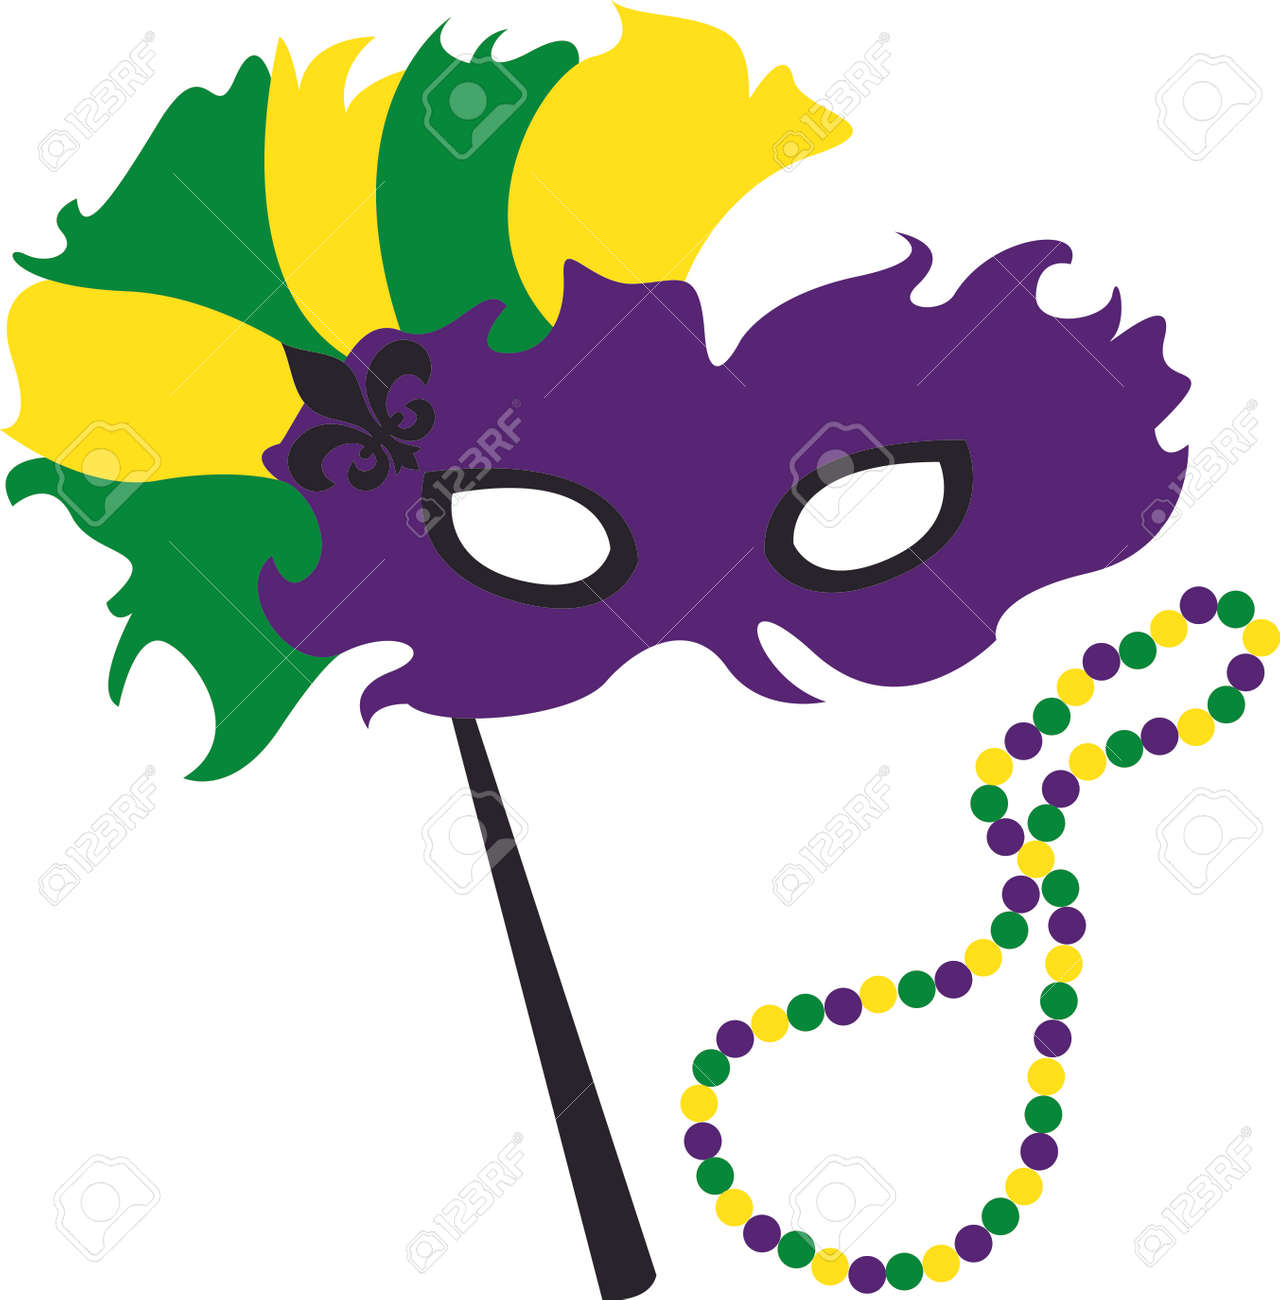 Use this masquerade mask for your Mardi Gras design. - 43681382